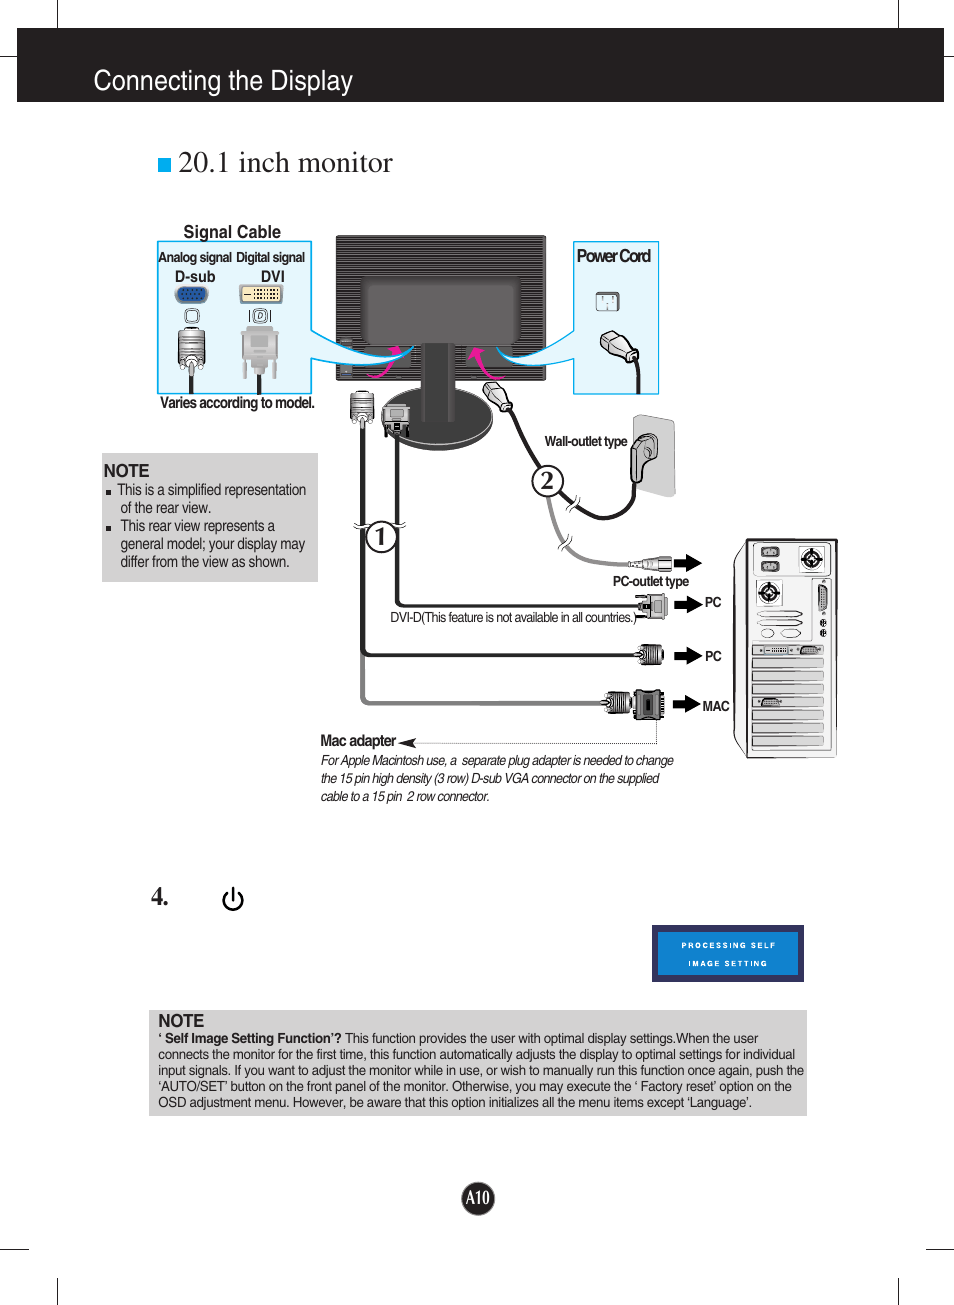 hight resolution of 1 inch monitor connecting the display lg l204wt bf user manual page 11 32